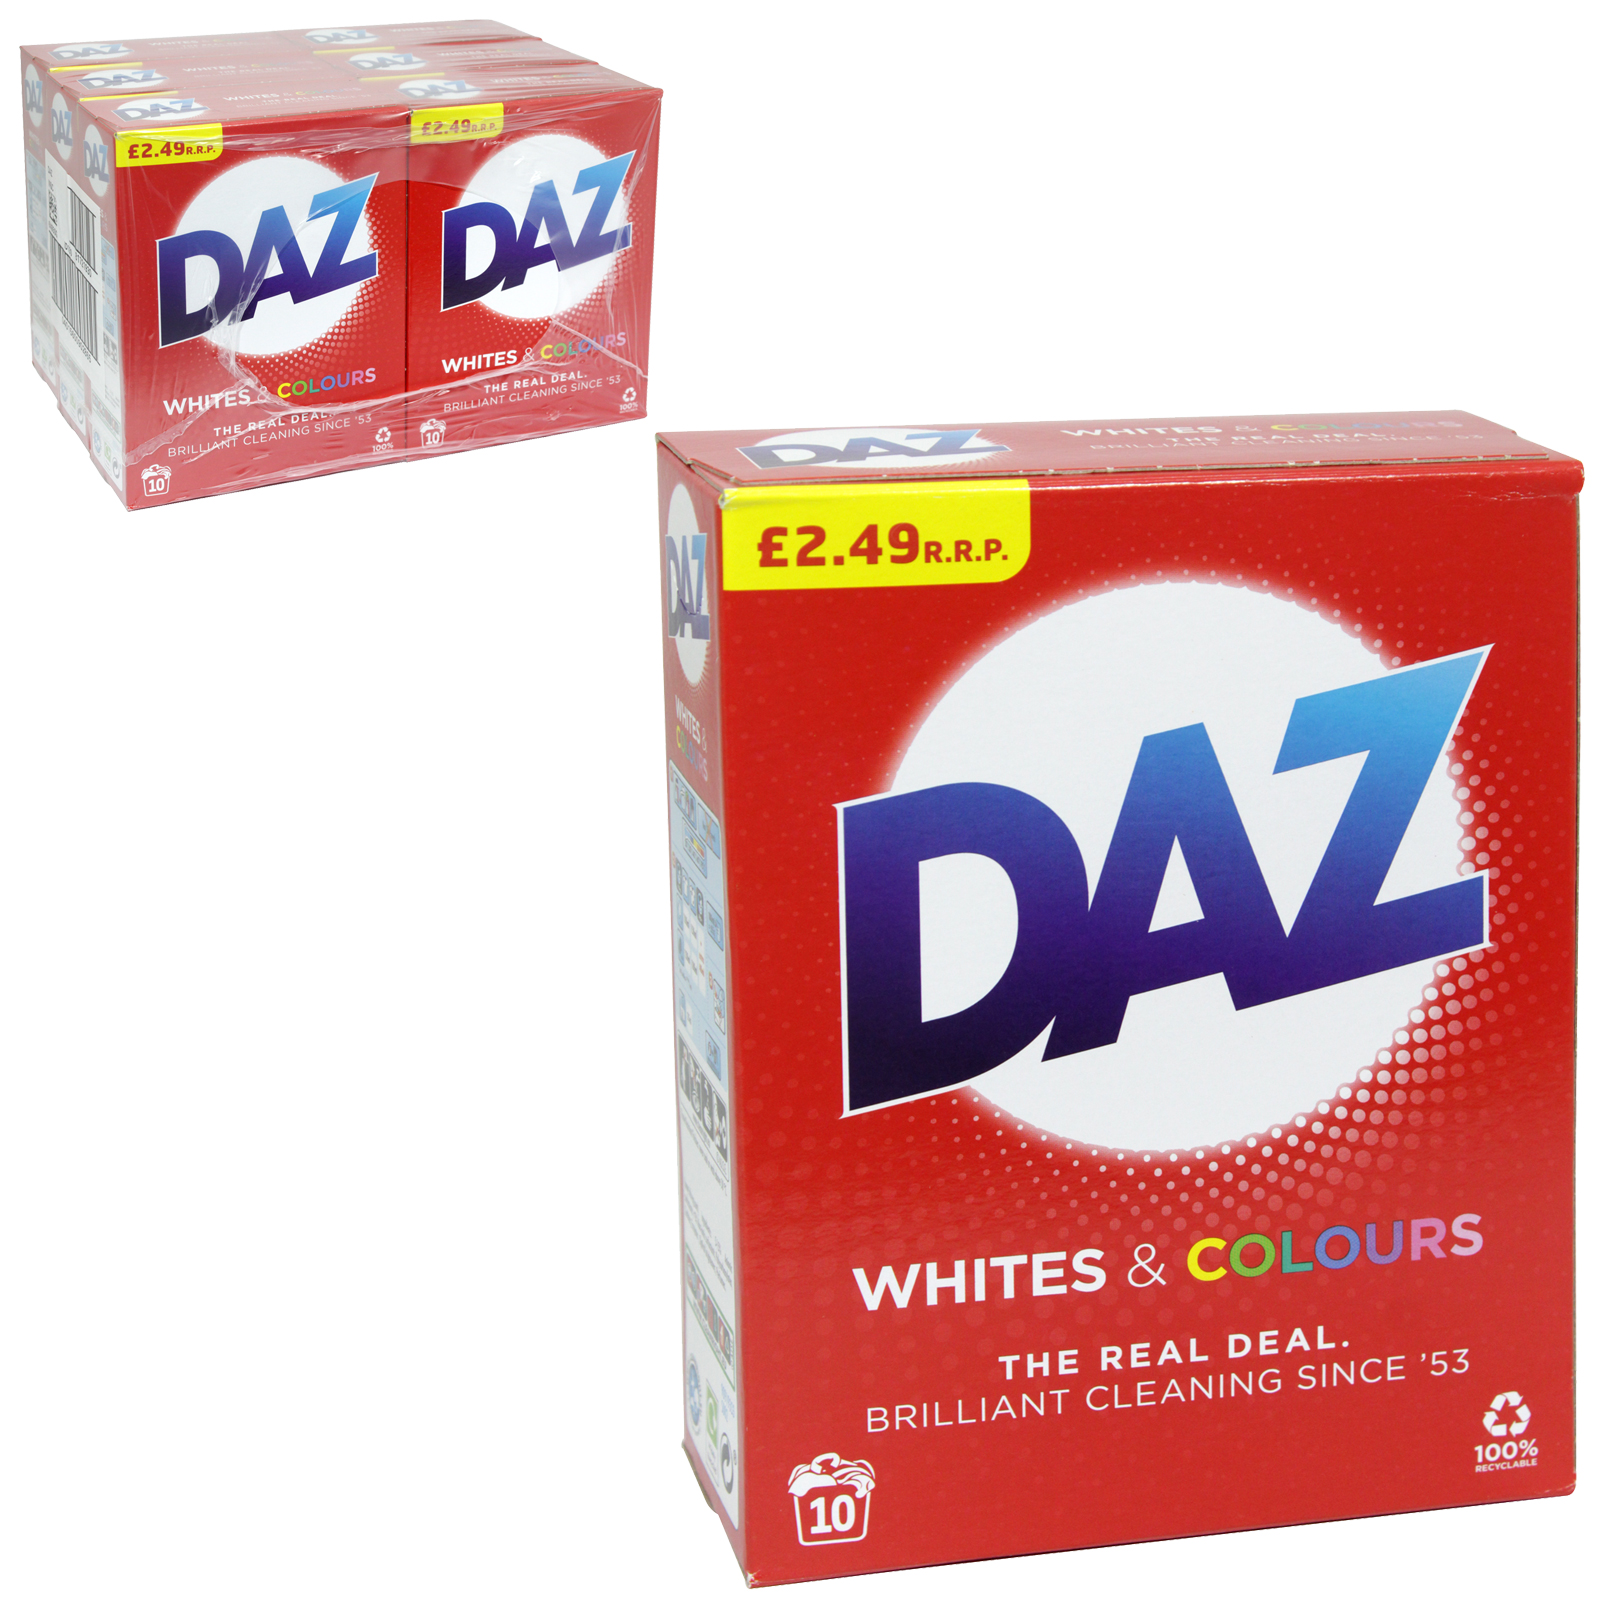 DAZ POWDER 10 WASH PM?2.49 REGULAR X6